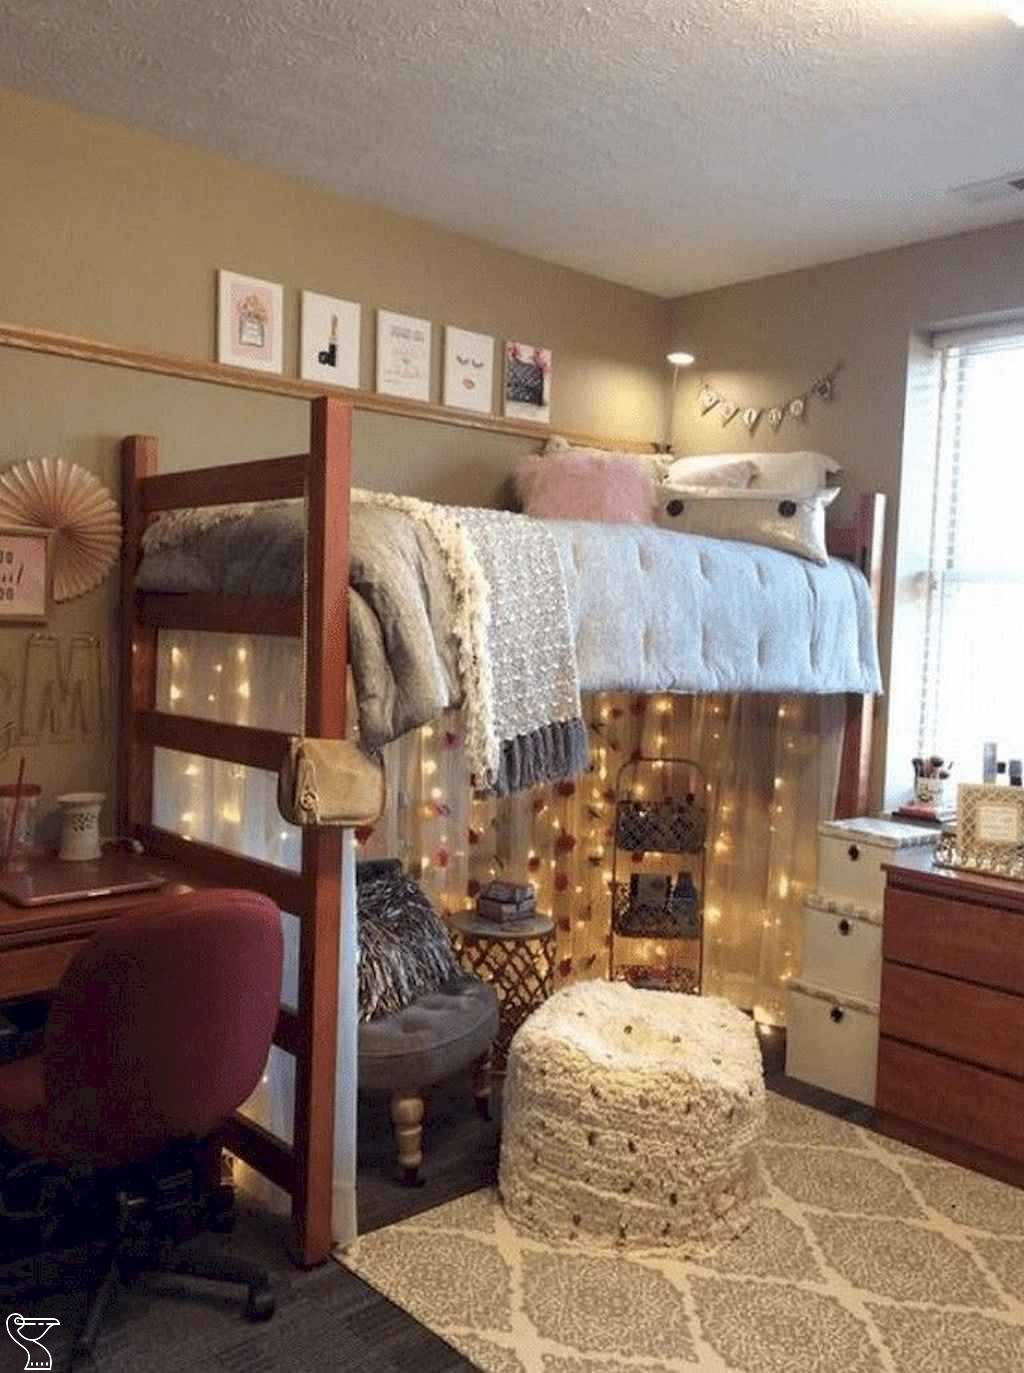 65 Cute Dorm Room Decorating Ideas On A Budget Dorm Rooms Are Small By Nature And The Limited Space Mak Dorm Room Designs College Bedroom Decor Cool Dorm Rooms